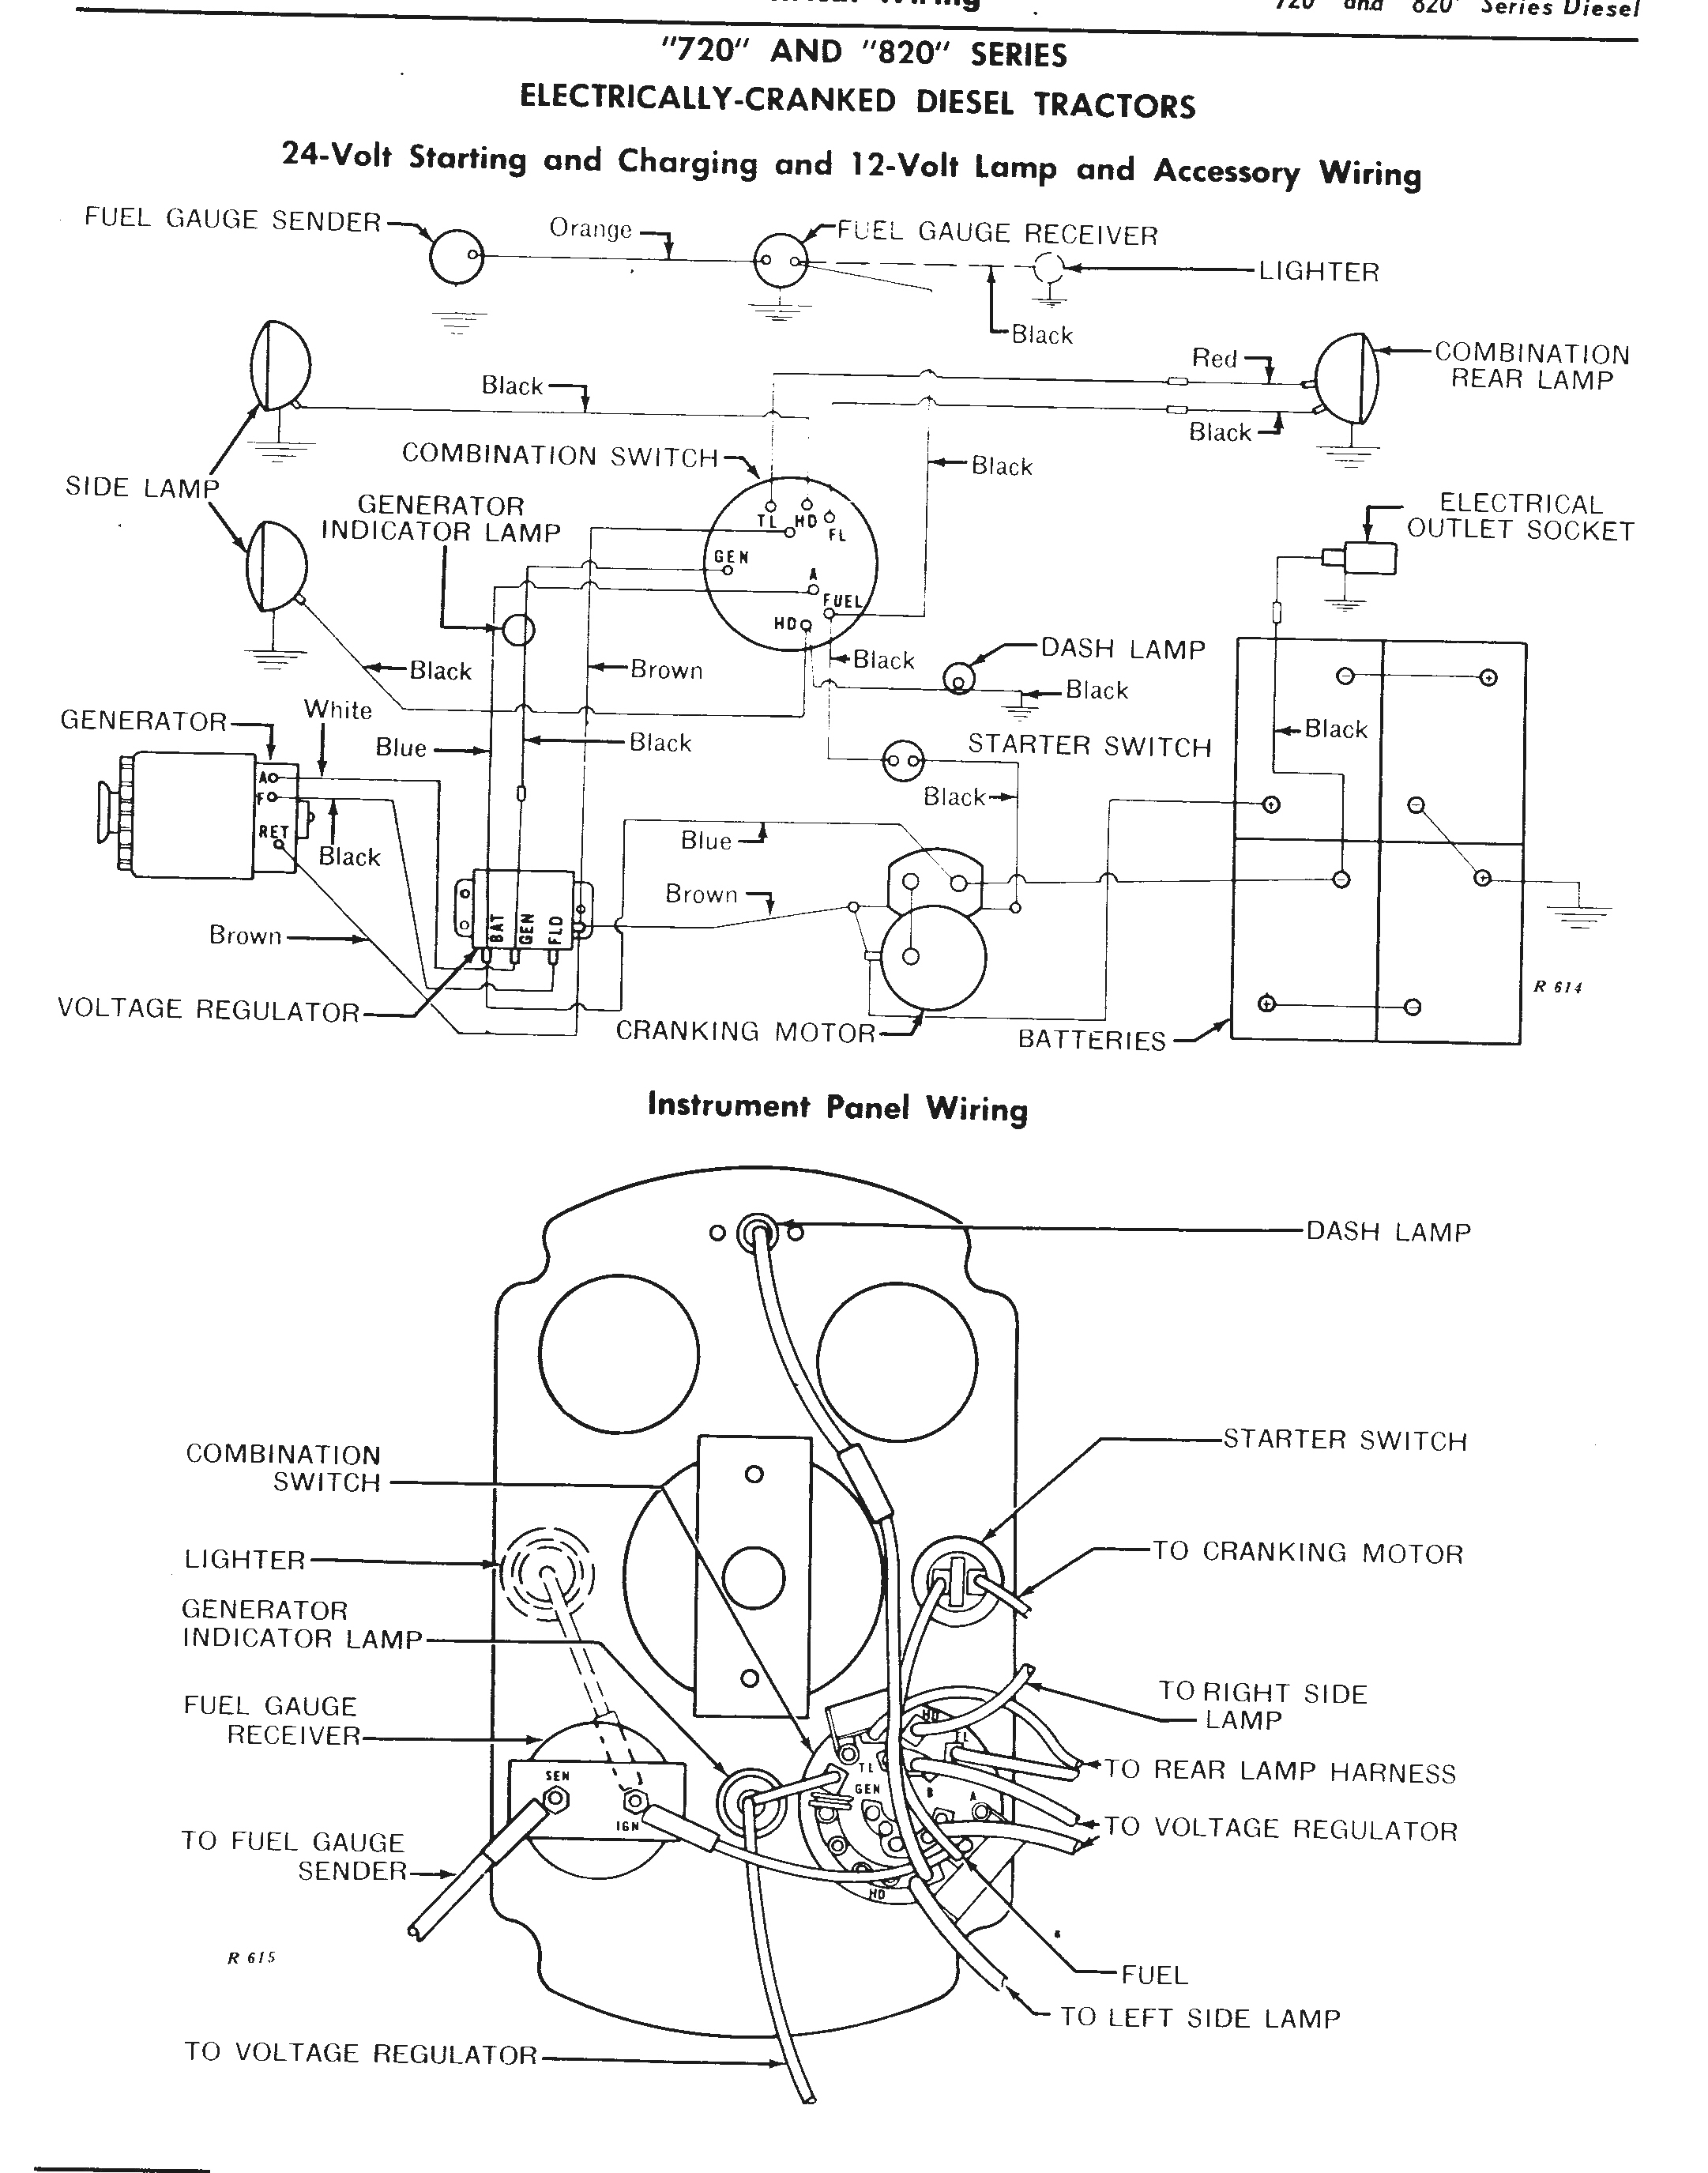 deere_24v_wiring the john deere 24 volt electrical system explained John Deere 2010 Parts Diagram at nearapp.co